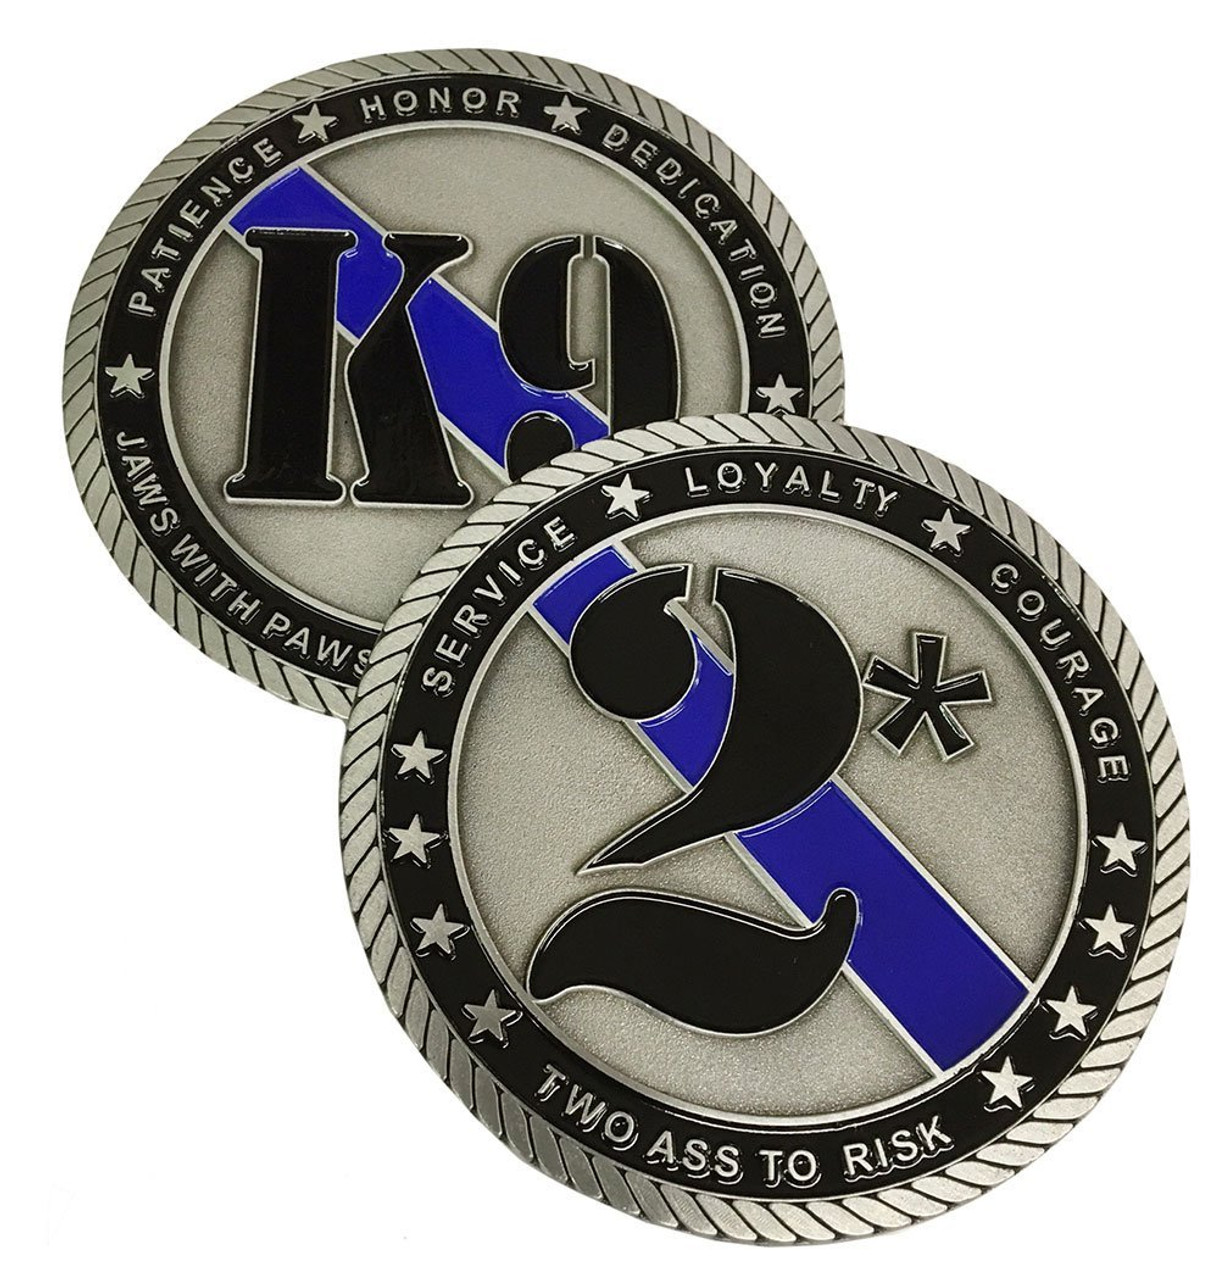 Two Ass To Risk Challenge Coin for Law Enforcement - K9 Officers